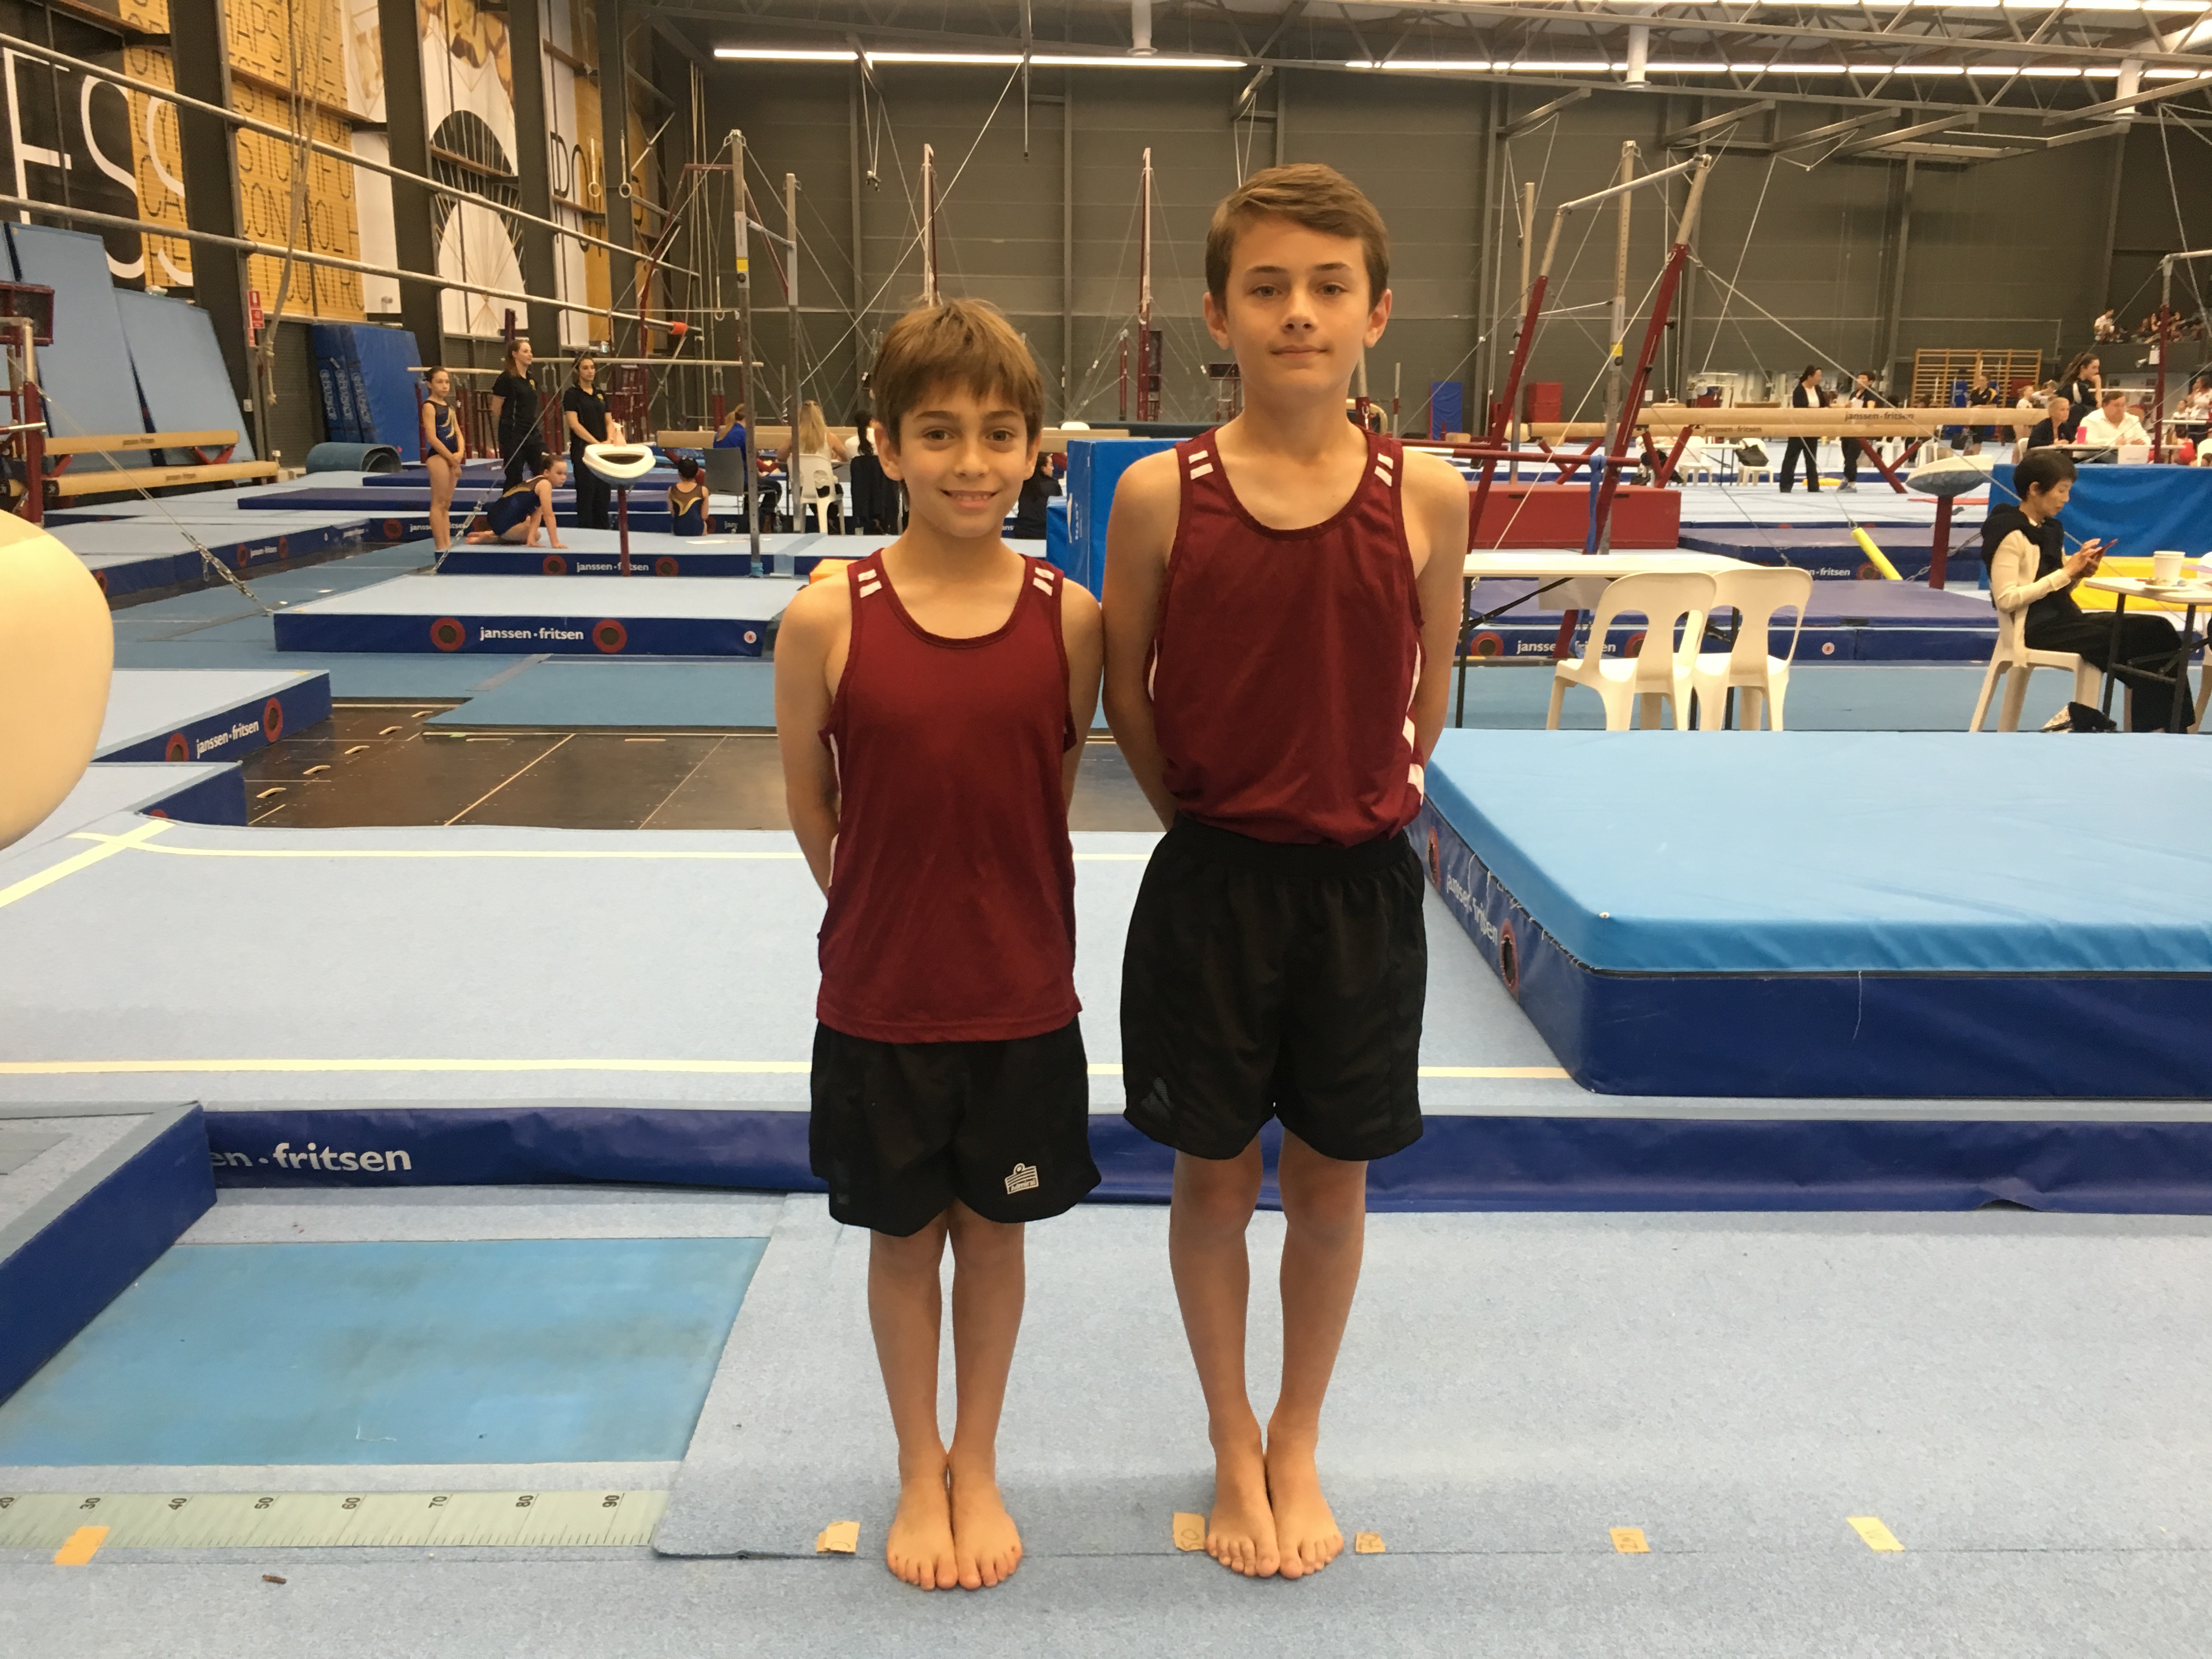 Bunnerong Gymnastics Kids Sydney Active Sport Boys Girls Competitive Recreational Fun Gym NSW